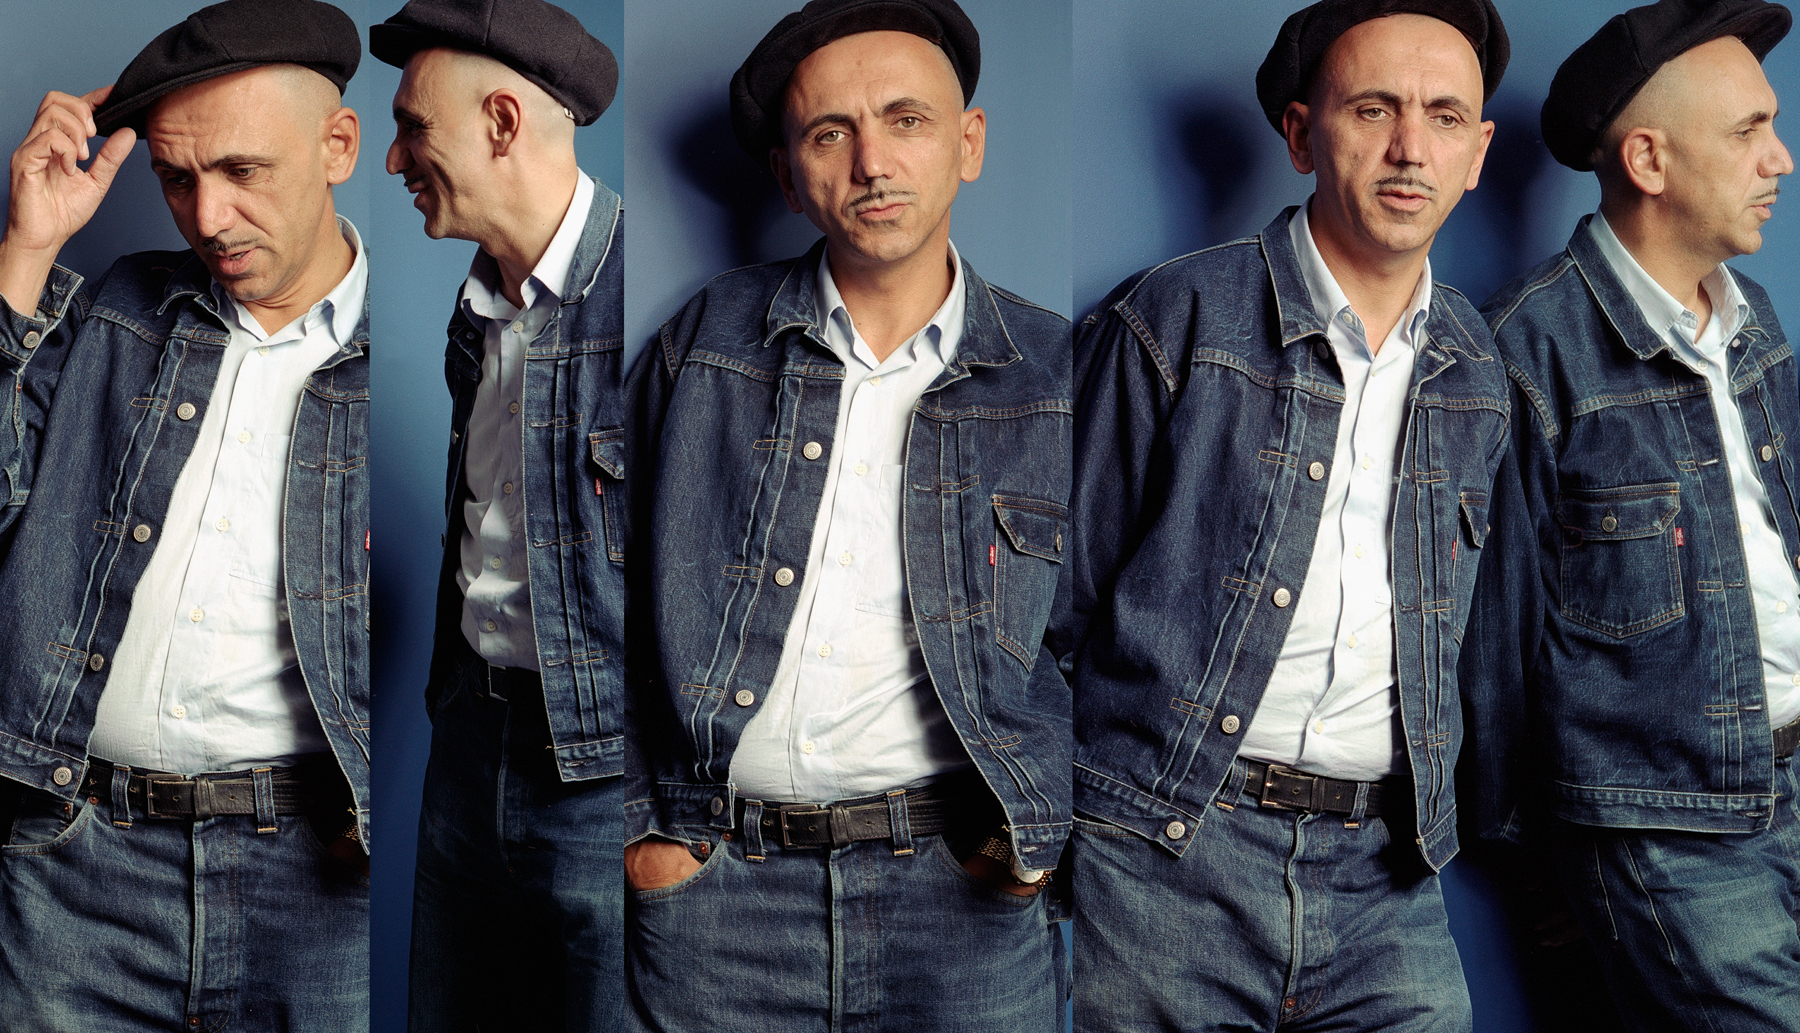 Dexys/Kevin Rowland